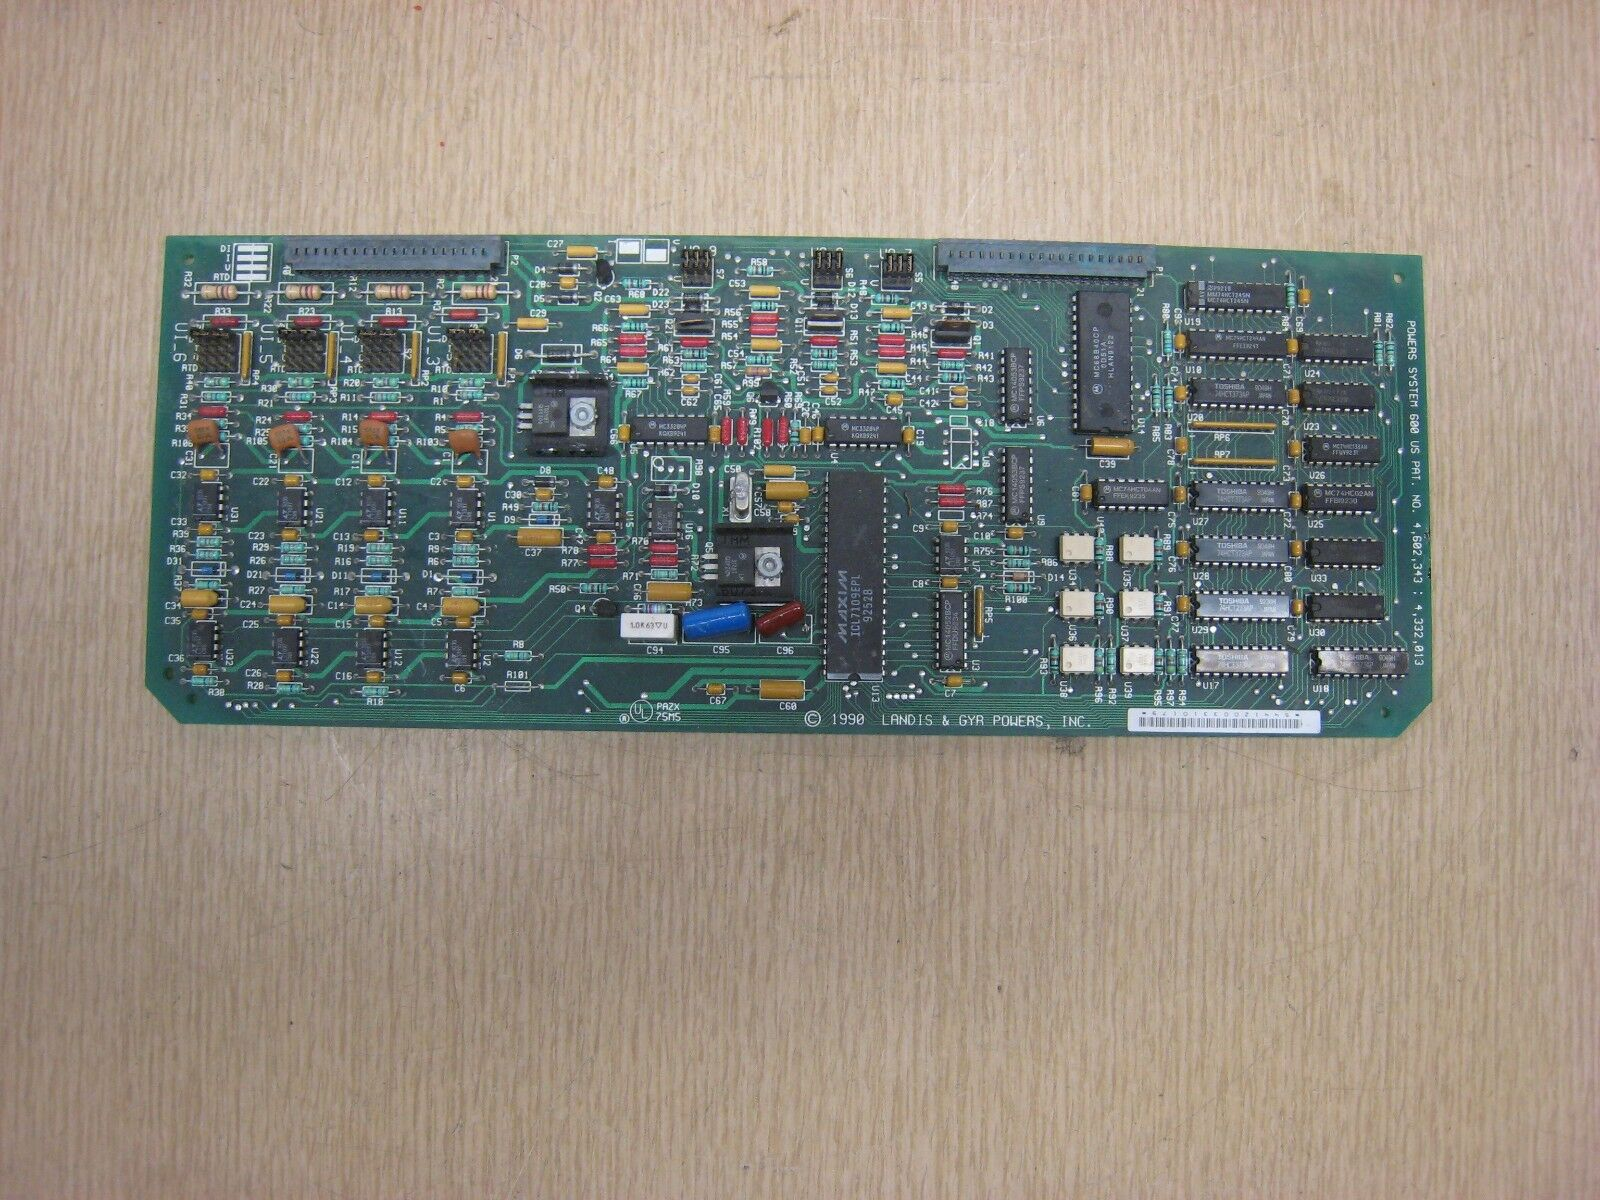 LANDIS & GYR POWERS PAZX-75M5 POWERS SYSTEM 600 CONTROL BOARD